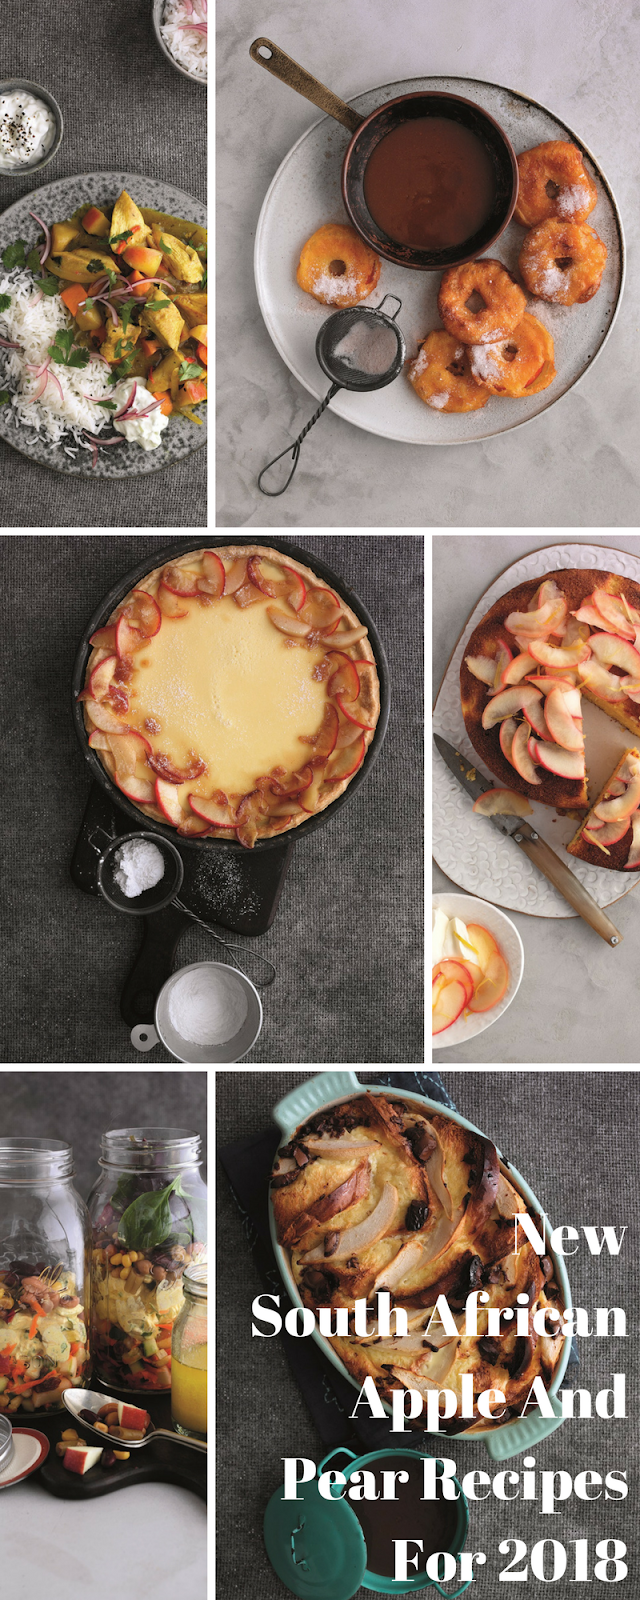 New South African Apple And Pear Recipes For 2018